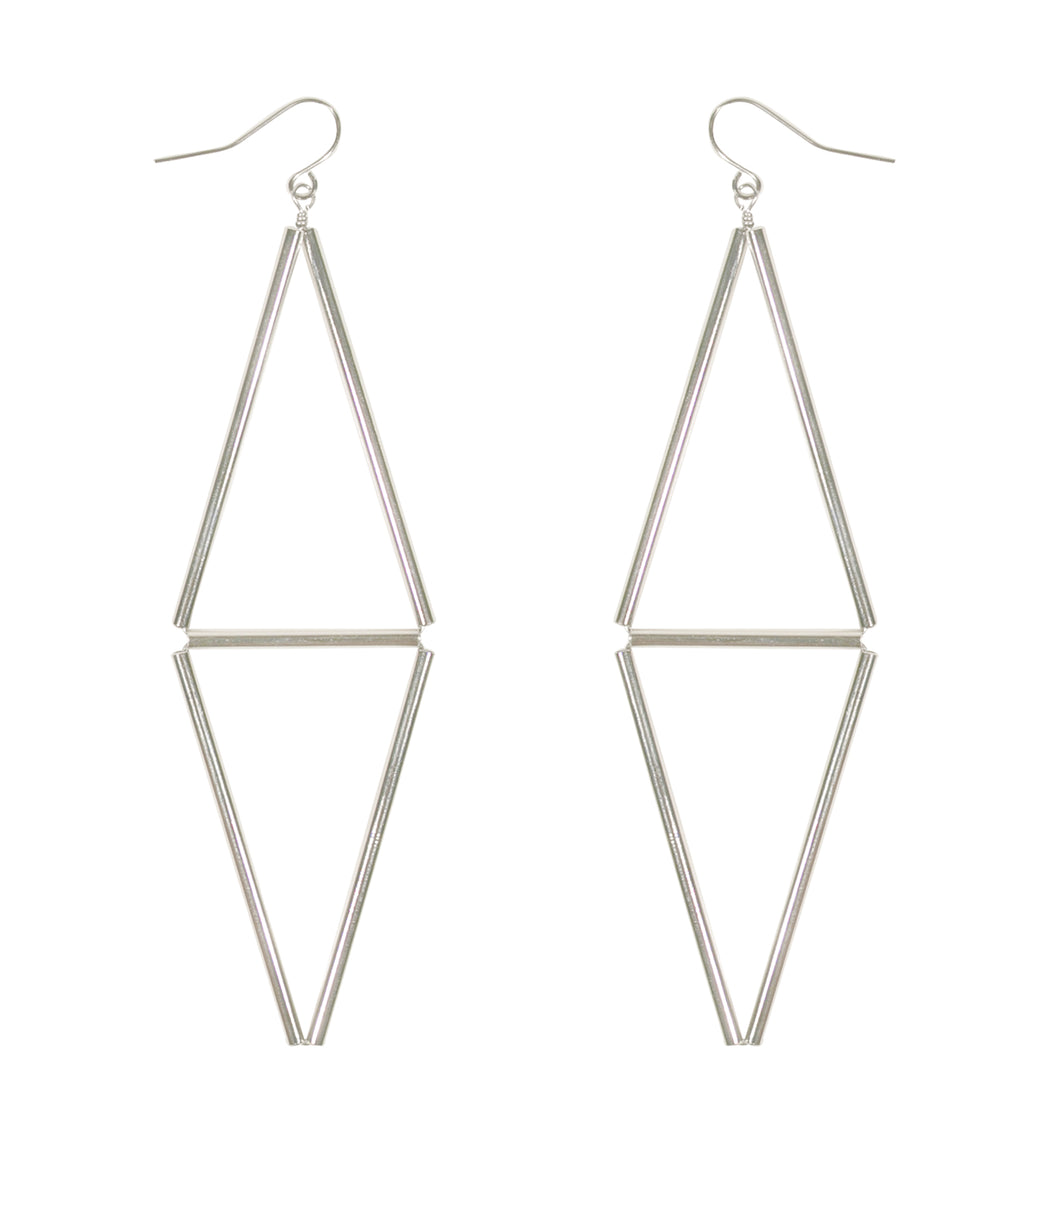 Silver tranquil dainty, long hanging earrings